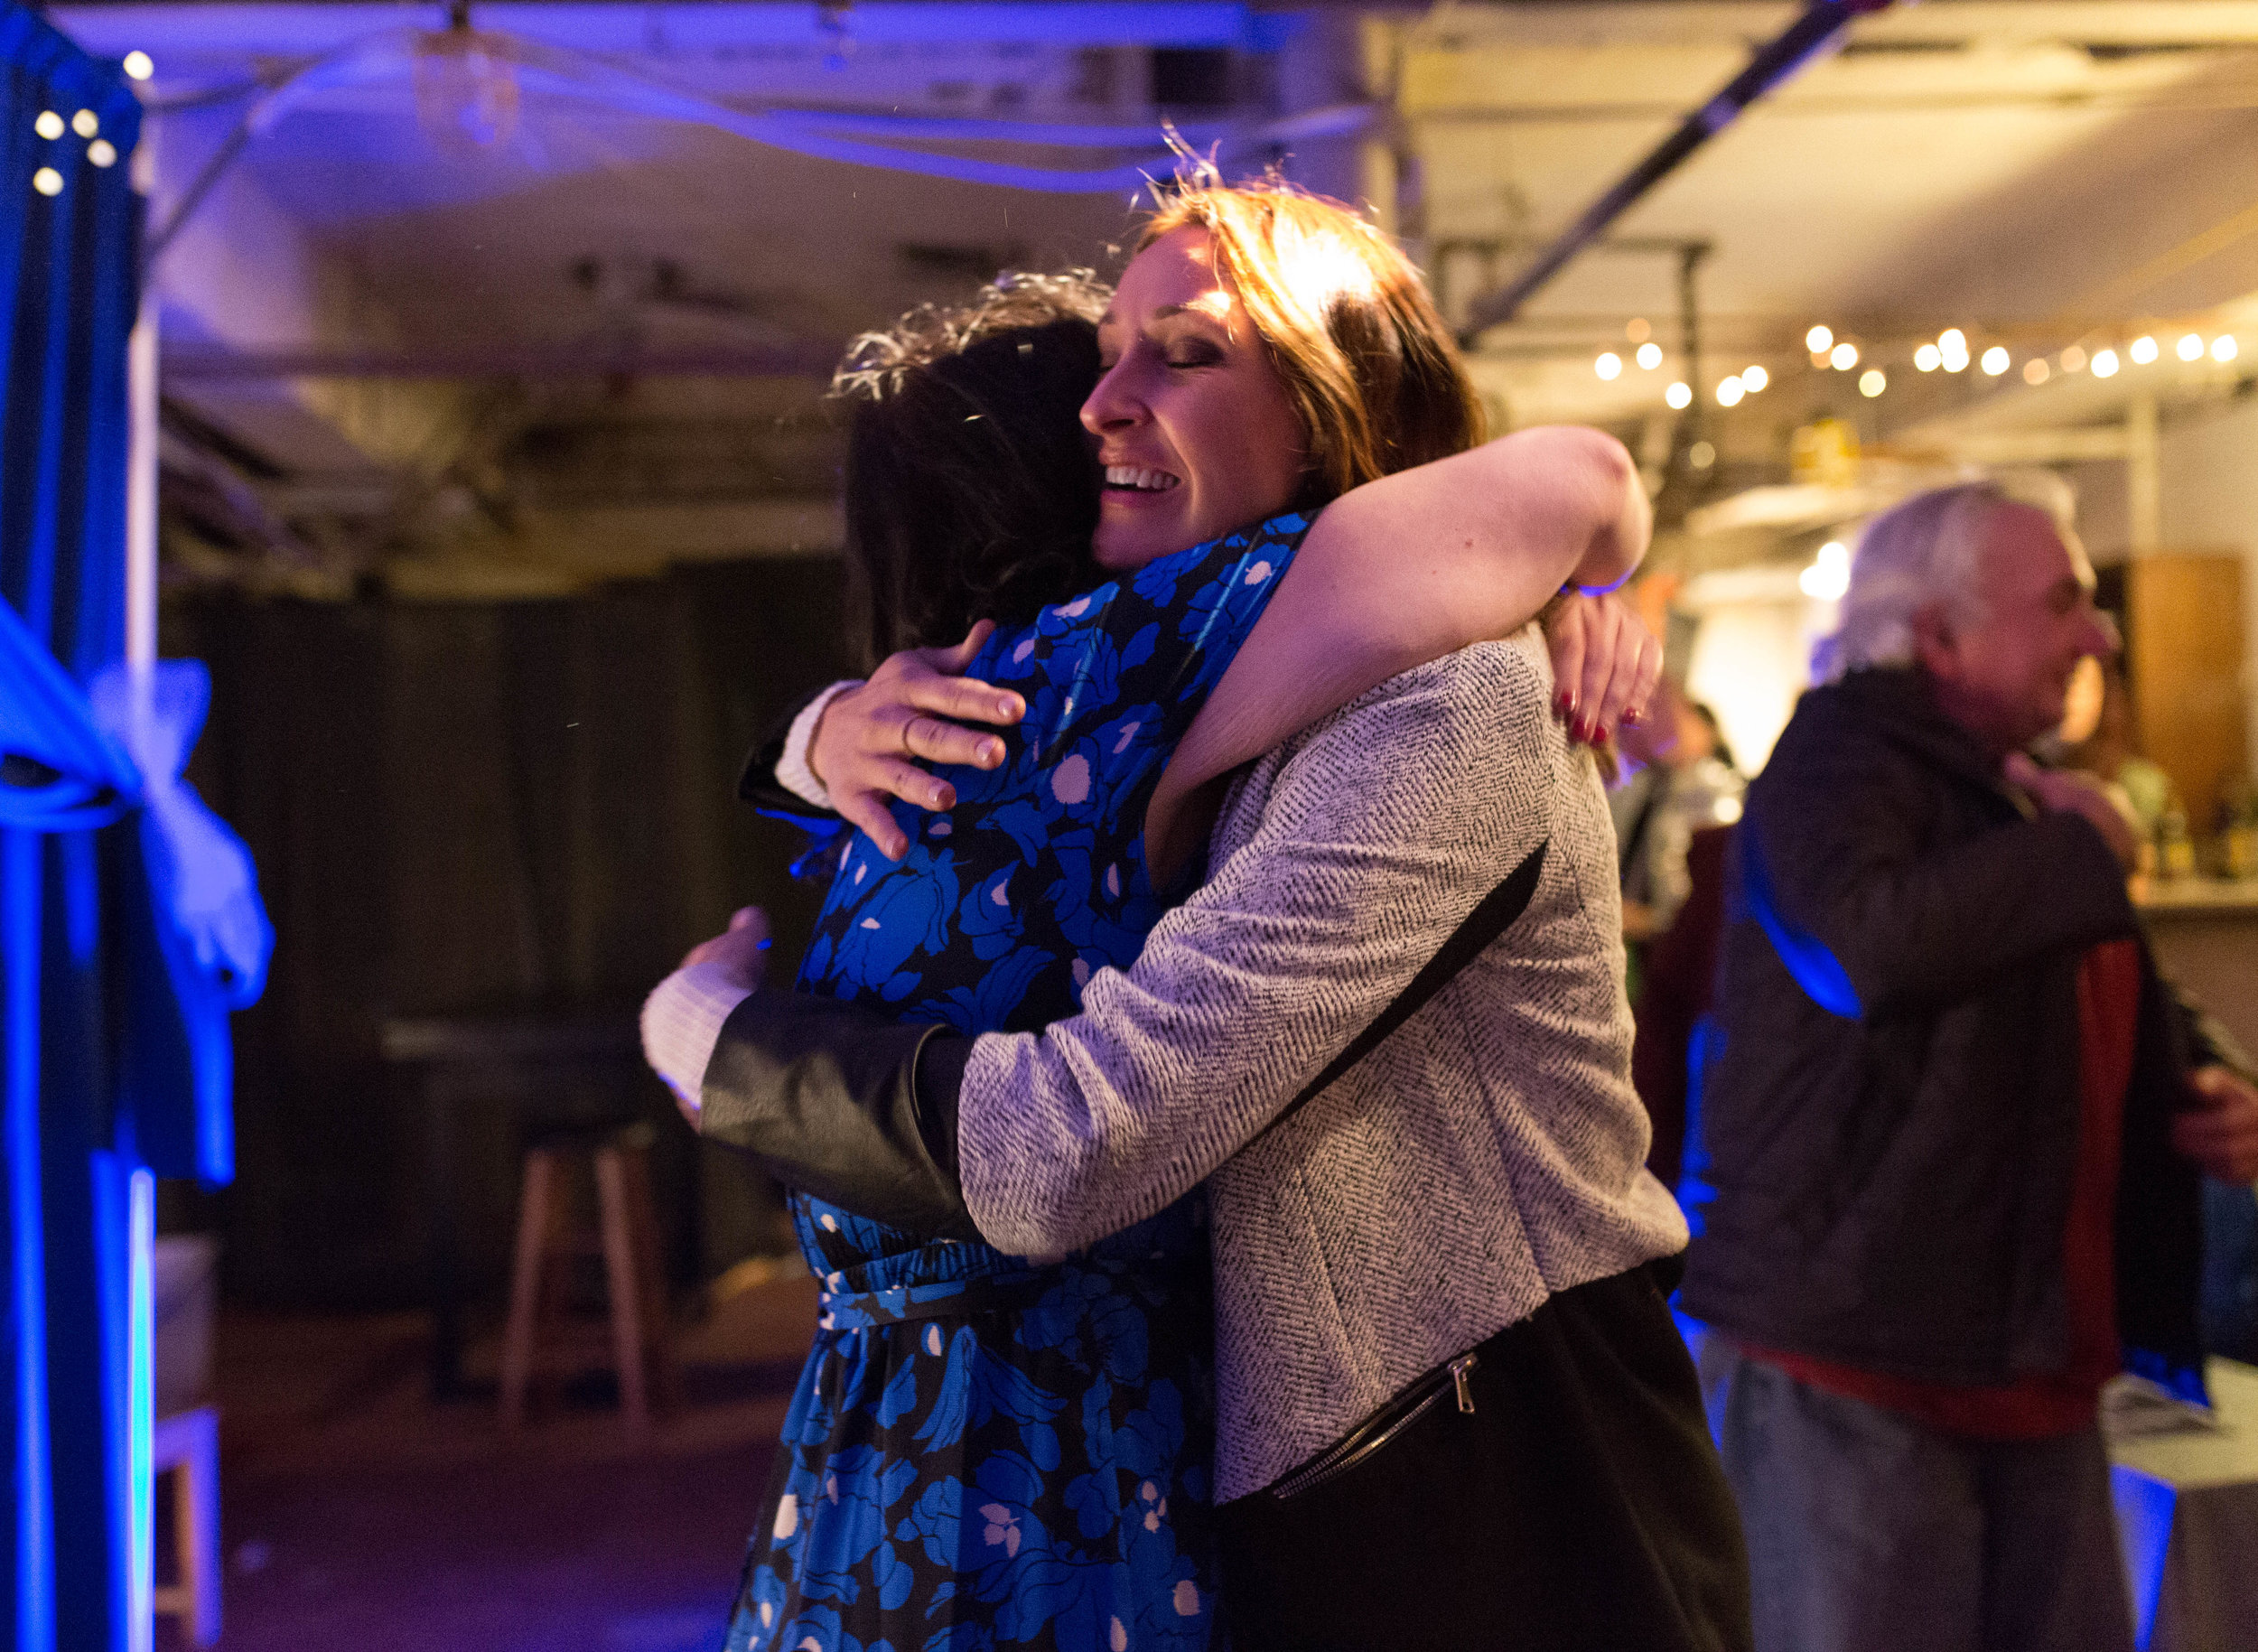 "Amy Brooks (left) and Kristin Schroeder (right) embrace after the end of the Boston Academy of Burlesque Education student showcase on Nov. 6, 2016 in Cambridge, Mass. Schroeder, Brook's best friend, flew in from Minneapolis to see her perform. ""She was in really abusive, manipulative relationships...and she doesn't put up with that crap anymore, and she's starting to date guys that are worthy of her,"" Schroeder said."